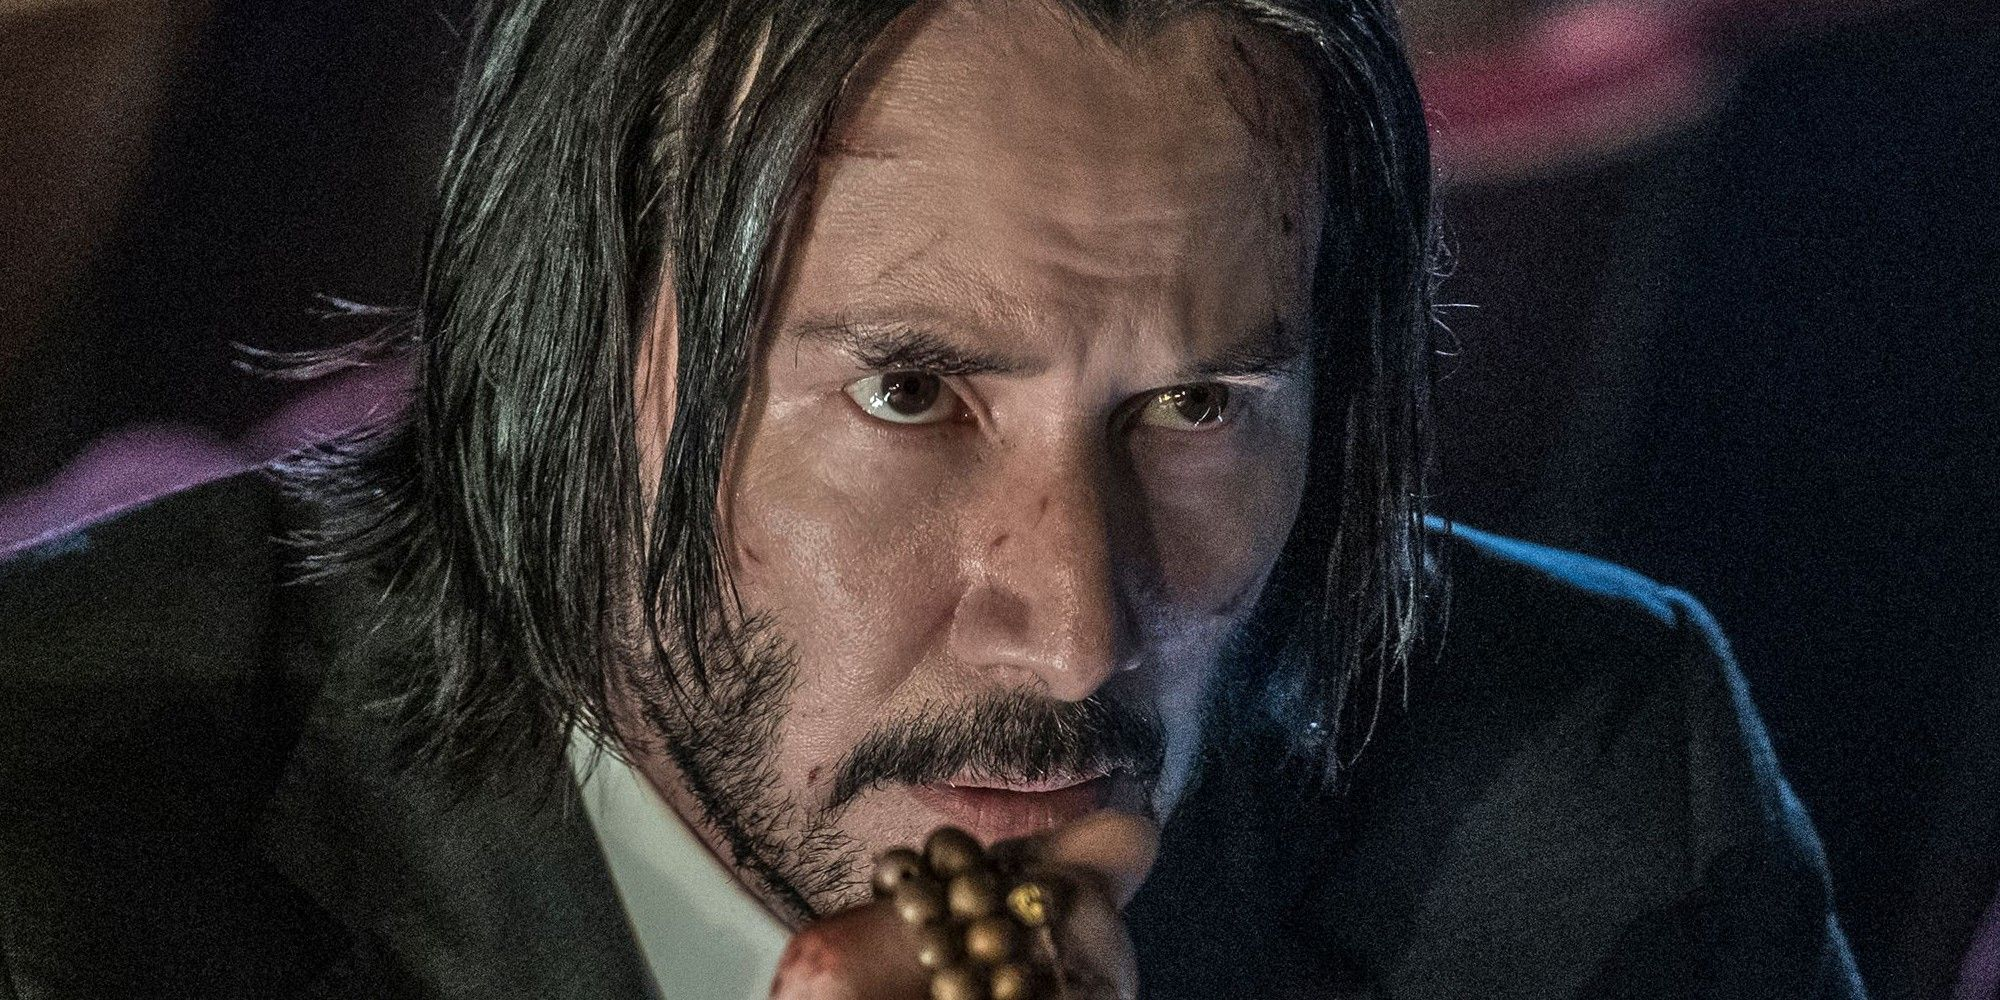 Keanu Reeves' 10 Best Movies (According To Rotten Tomatoes)